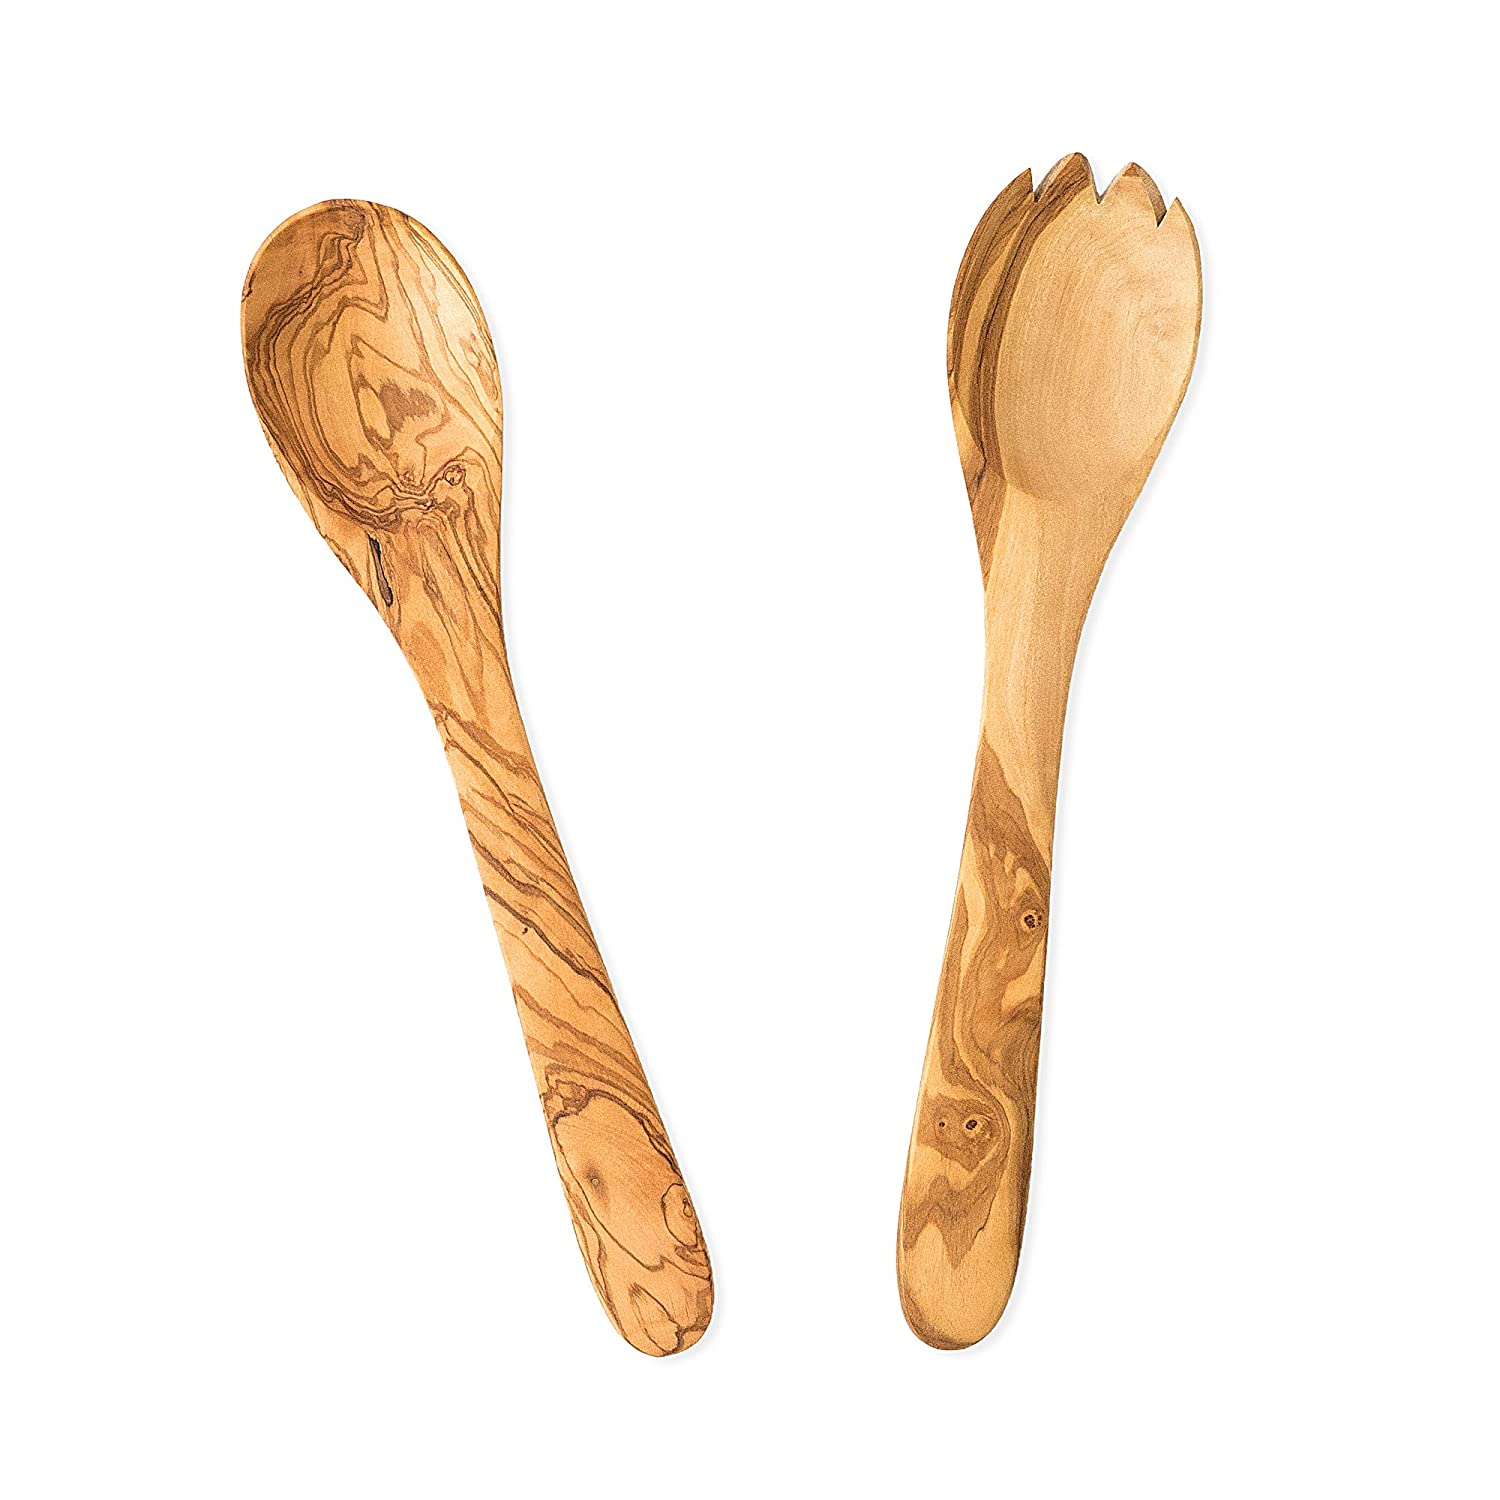 Ilyas Bazaar Olive Wood 2-Piece Wooden Salad Server Set - A striking presentation for tossed greens, fresh pastas, side dishes - Includes spoon and fork - Handcrafted in Tunisia, each piece is unique